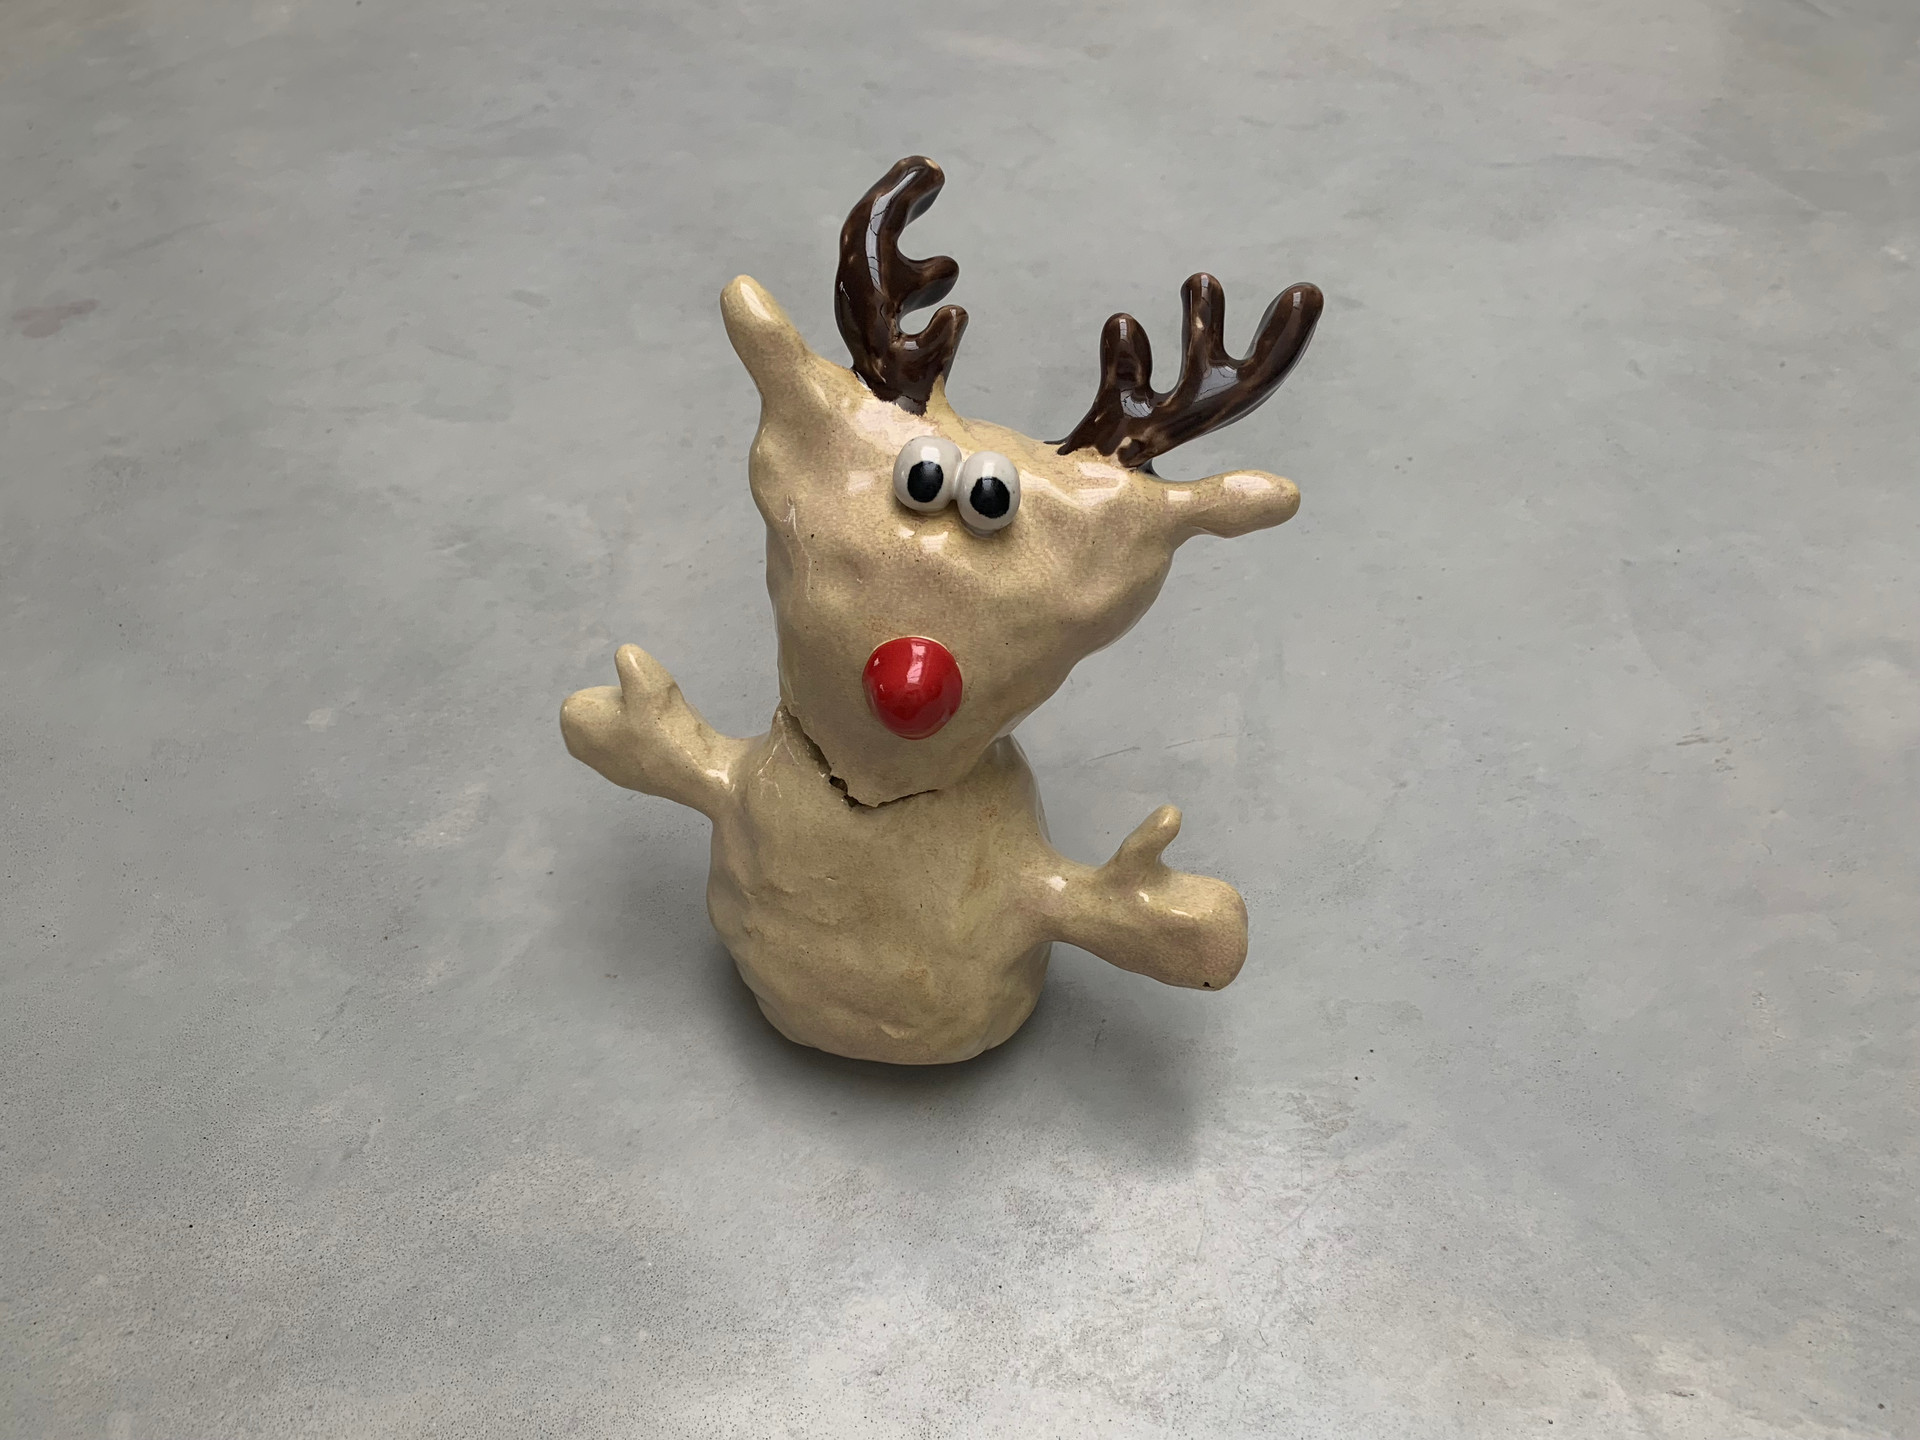 All I want for Christmas..., 2019 Glazed ceramic 4.3 x 8.6 x 3.5 inches